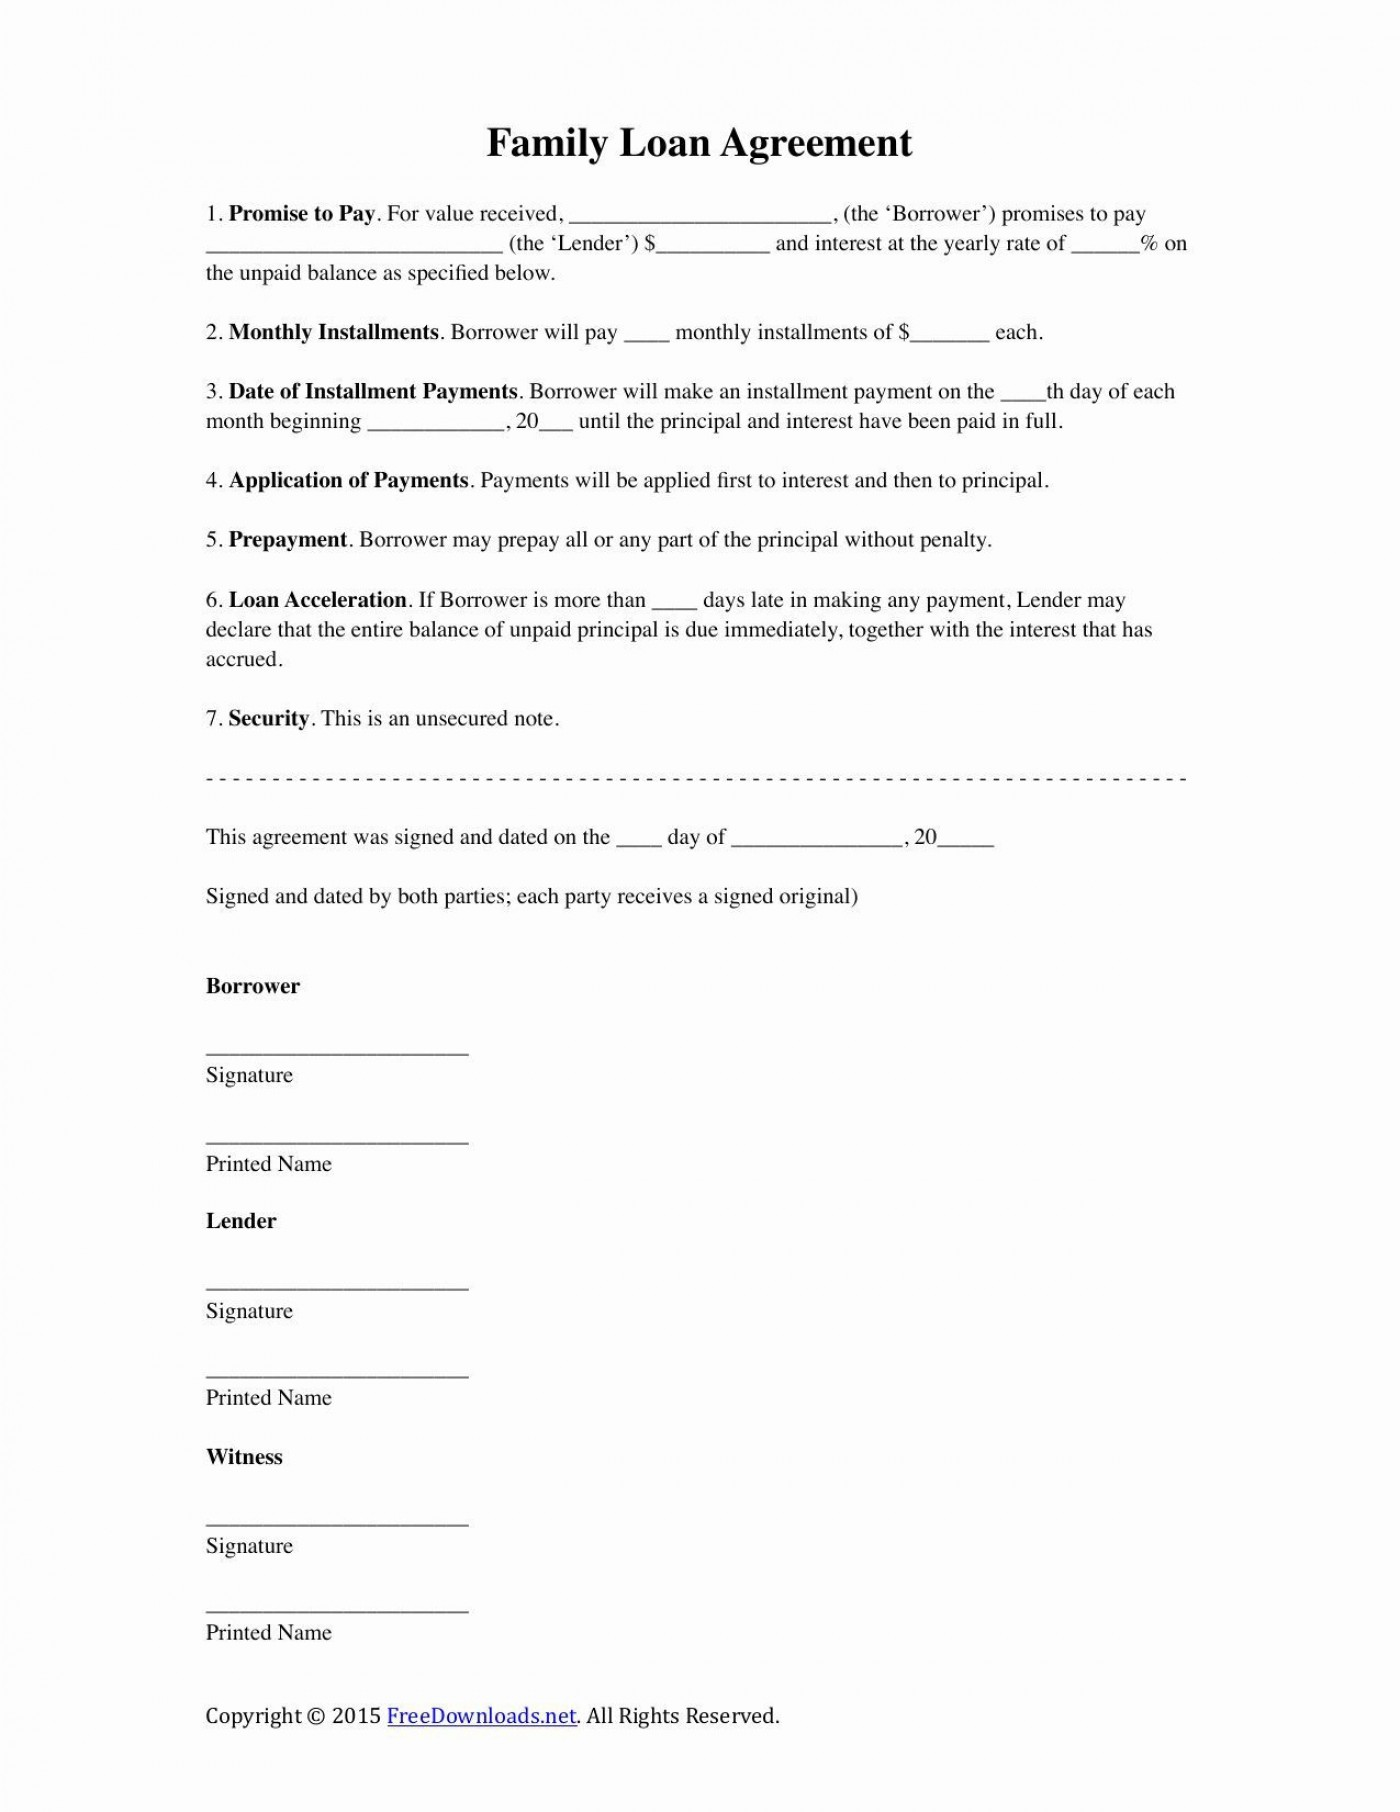 000 Frightening Family Loan Agreement Template Uk Free Picture 1400